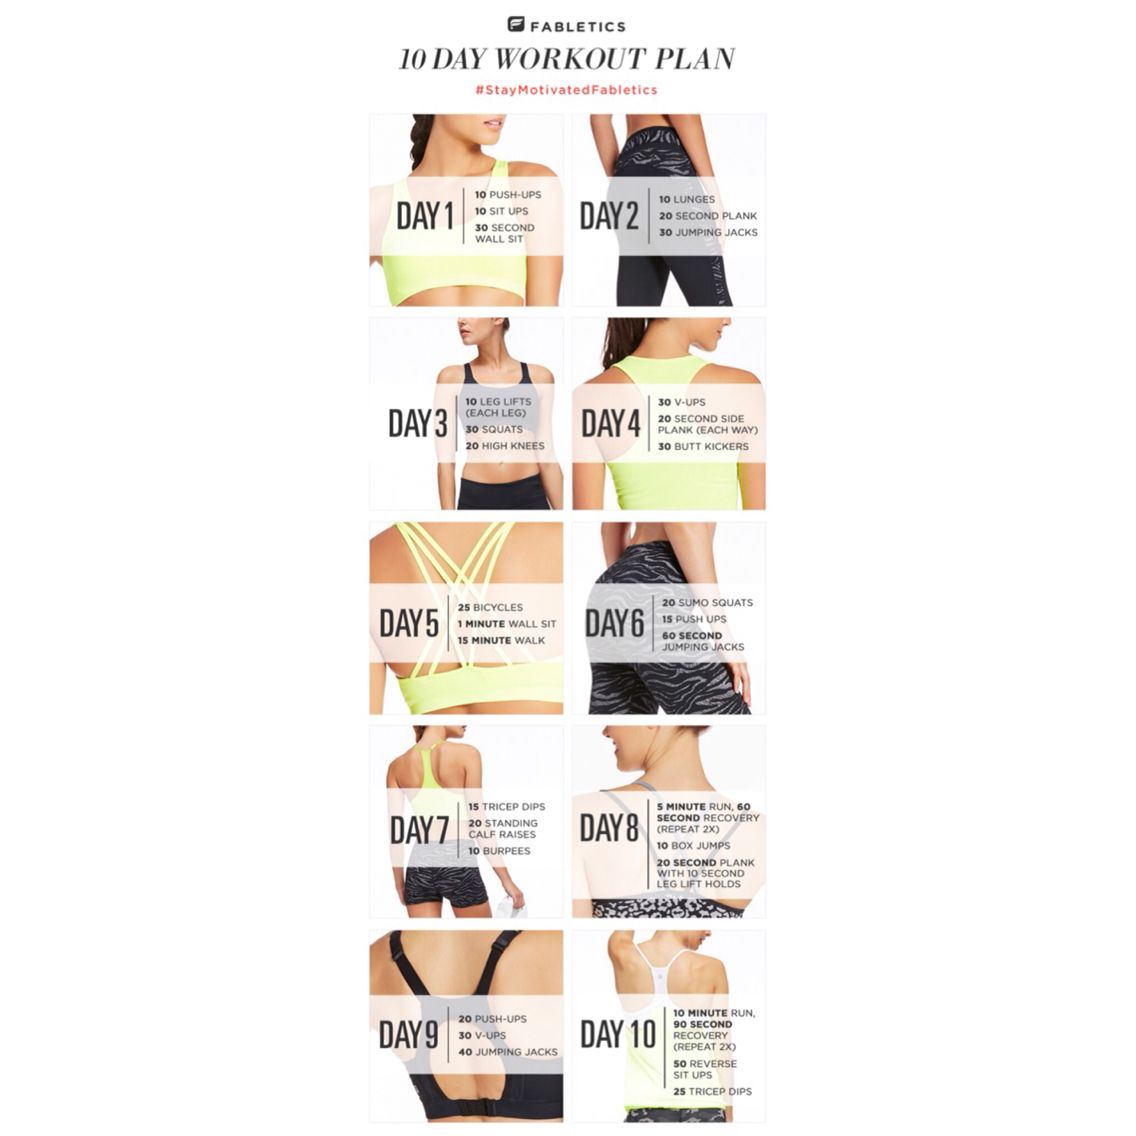 I'm excited to get started tomorrow on this 10 day challenge! My husband's joining me, how about you join in too! #StayMotivatedFabletics @Fabletics #ambsdr #FableticsFitSquad